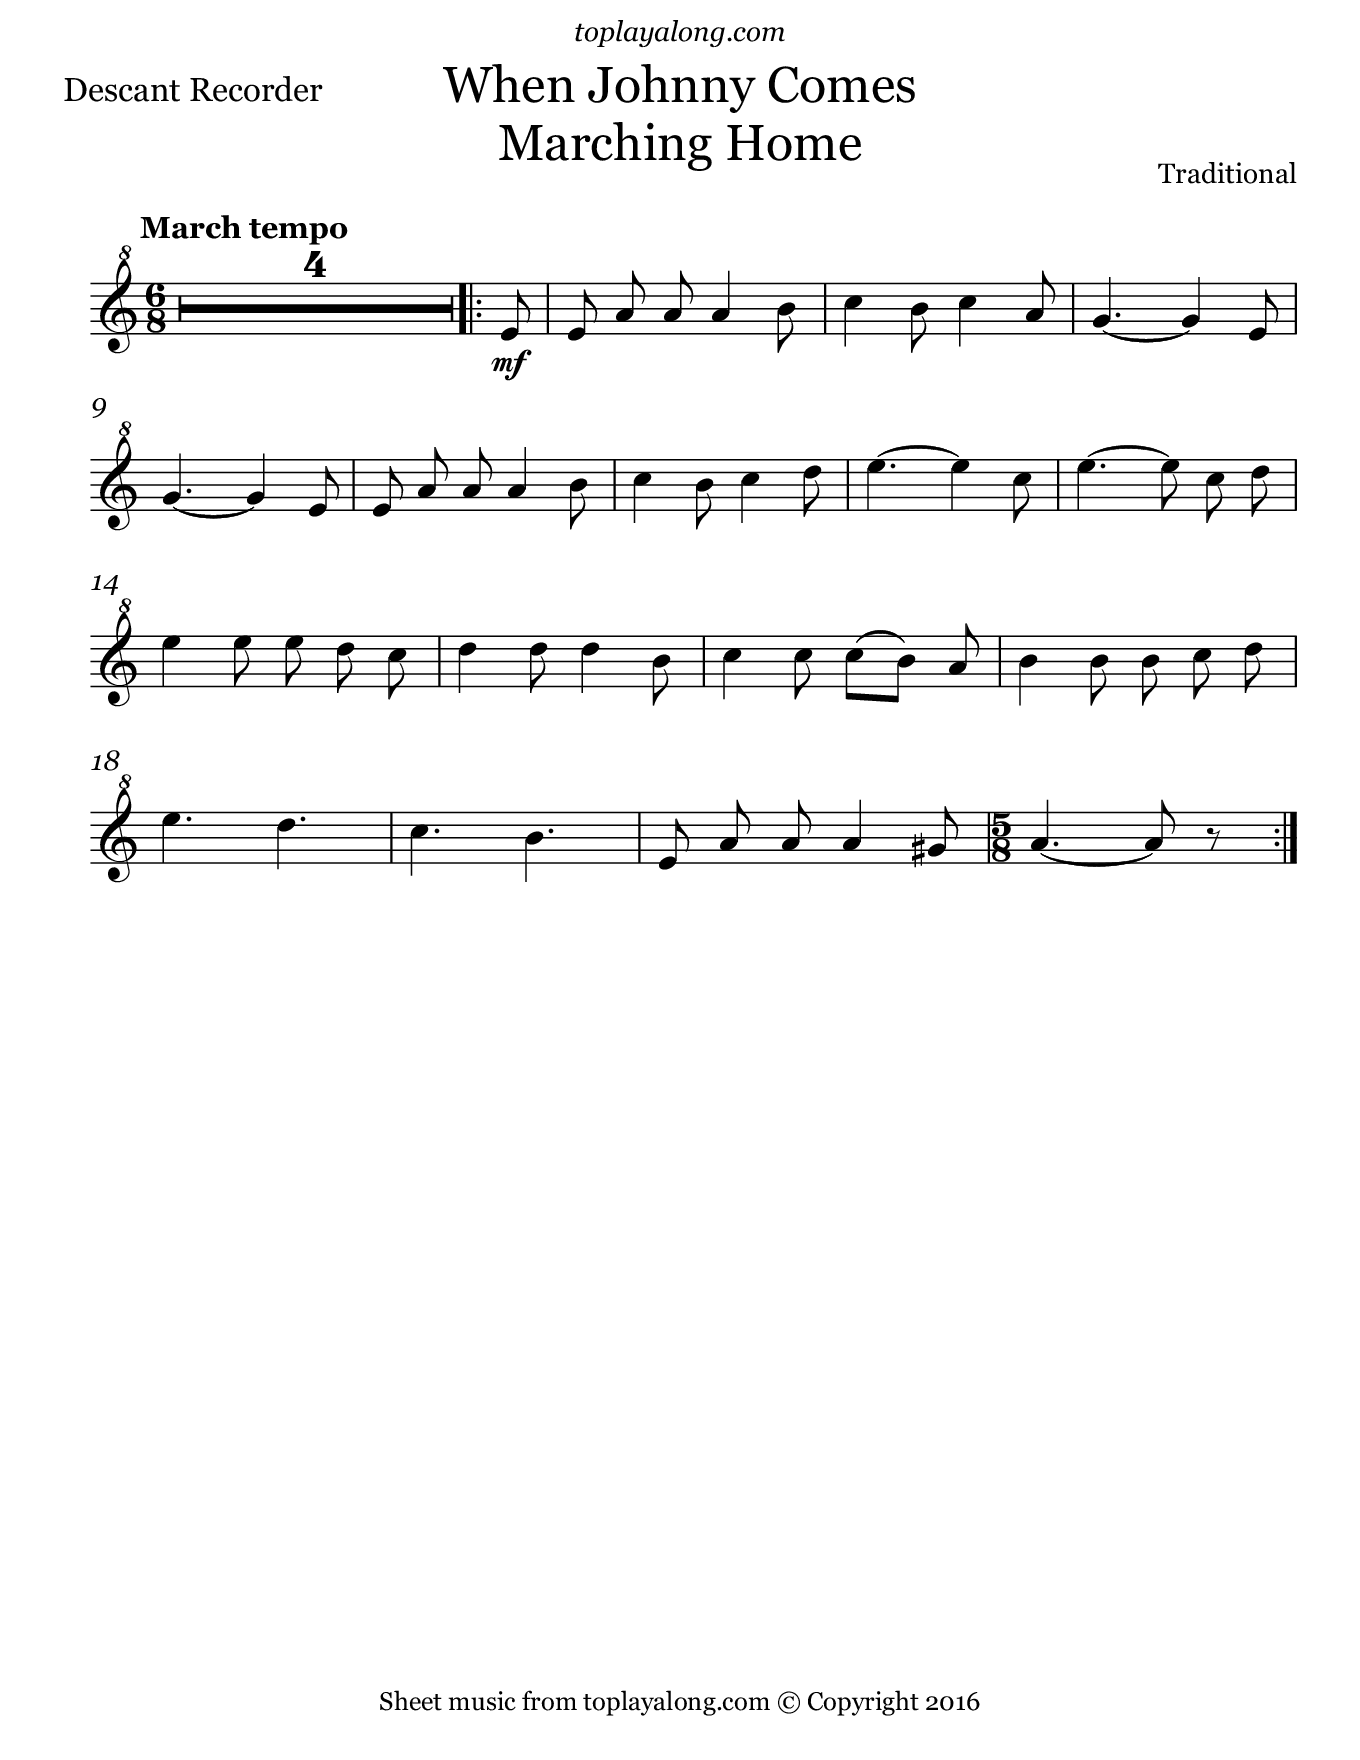 When Johnny Comes Marching Home. Sheet music for Recorder, page 1.